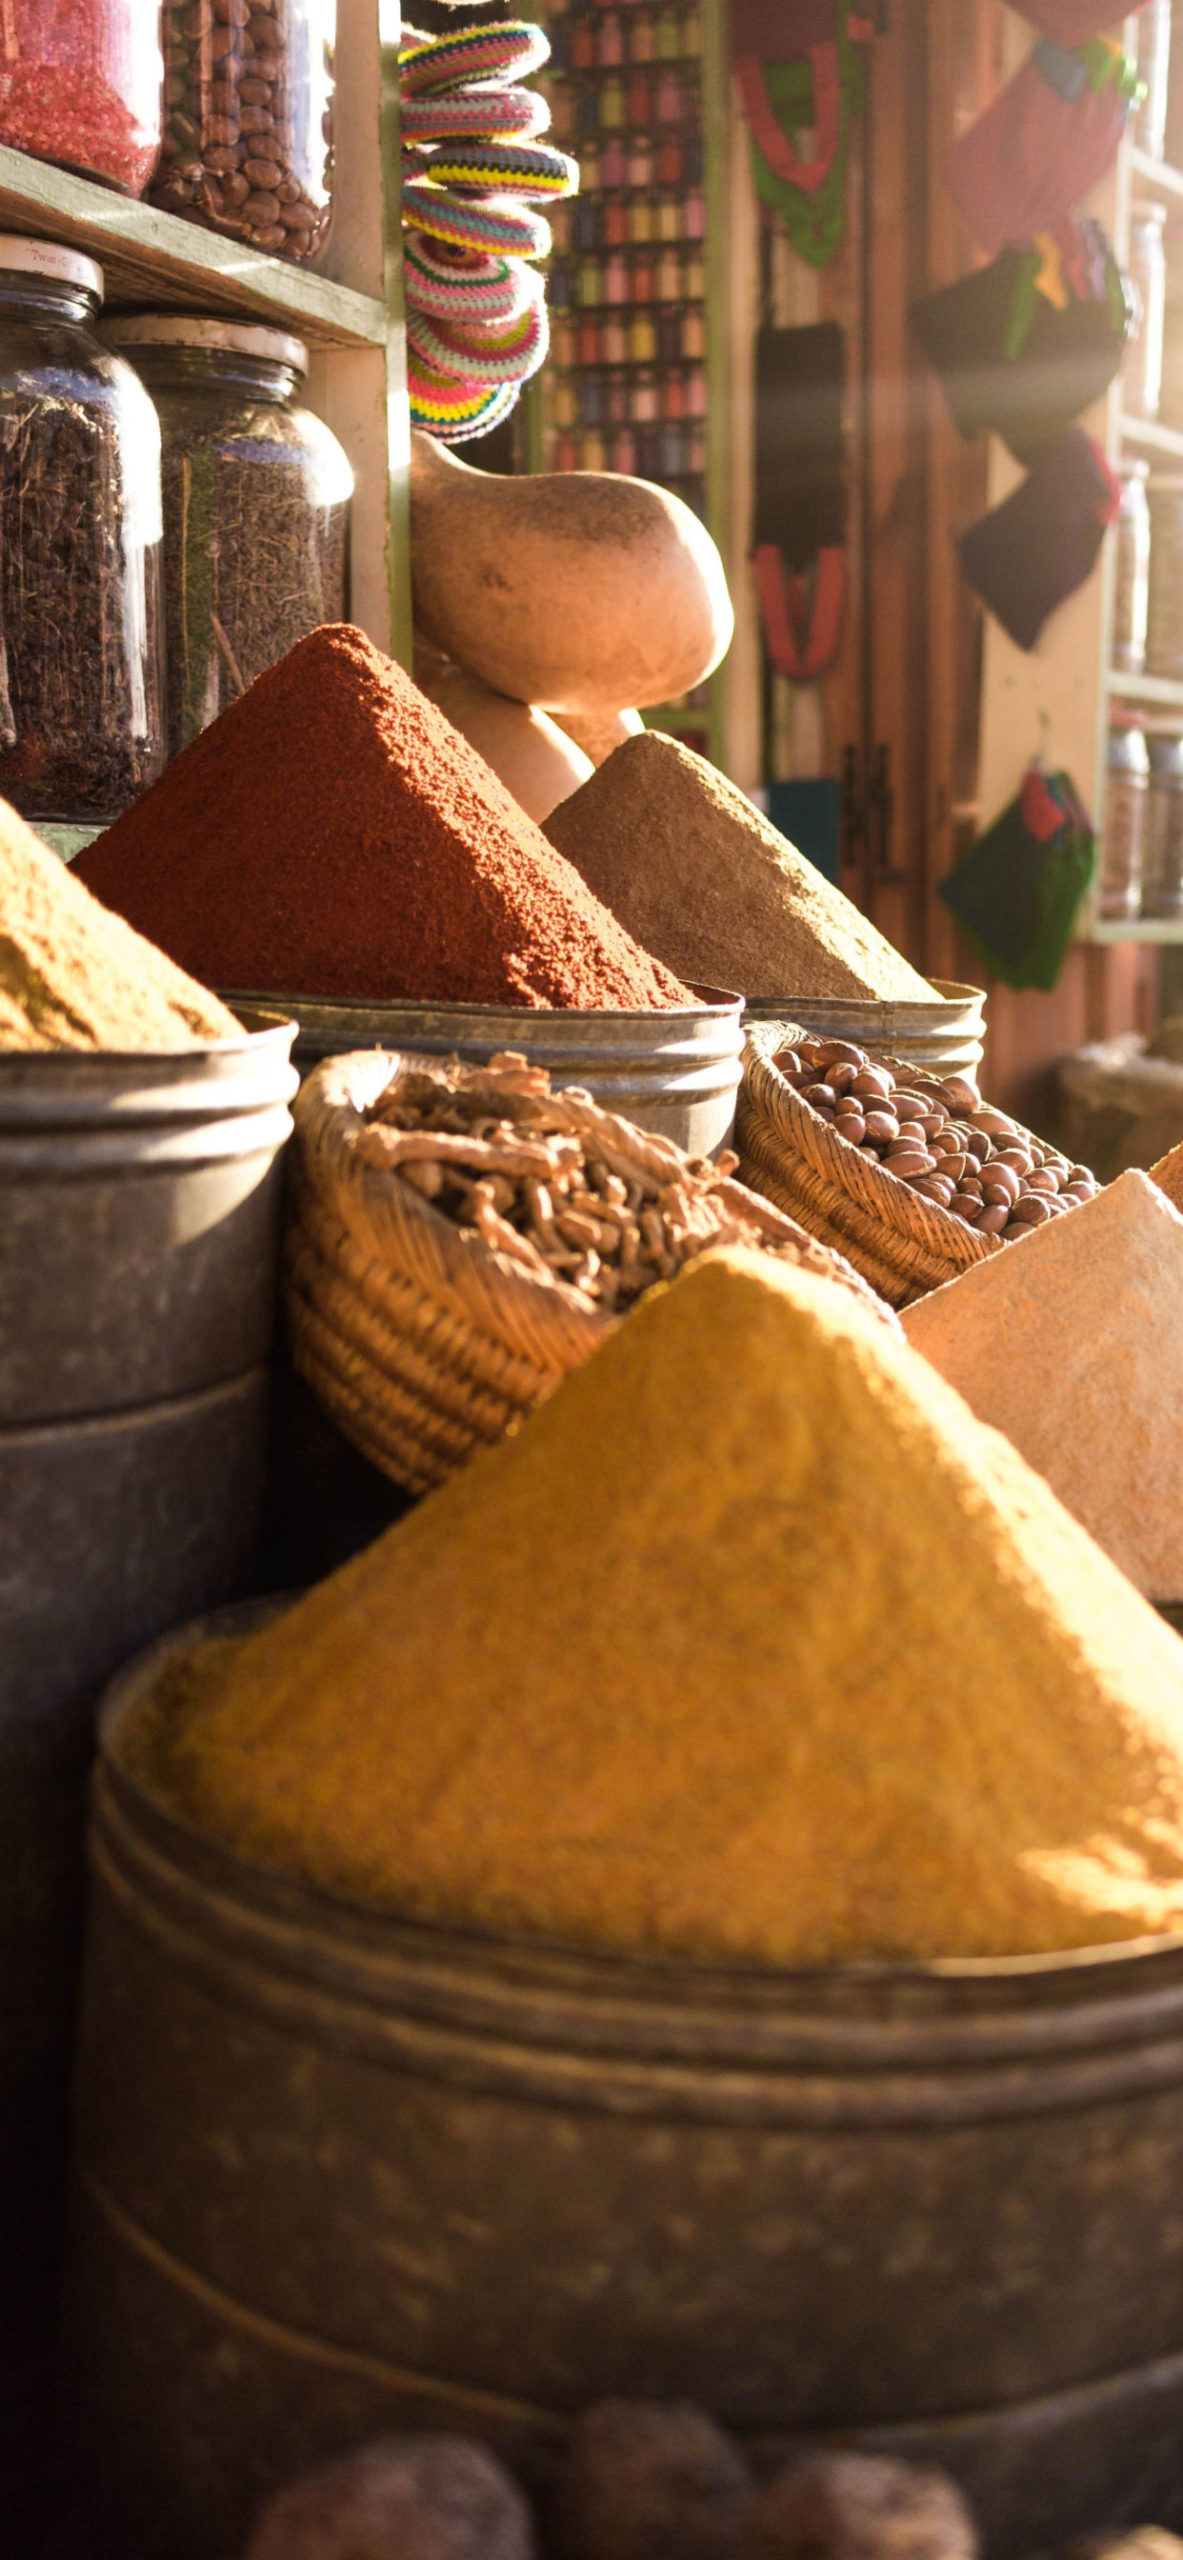 iPhone wallpapers marrakech spices scaled Marrakech